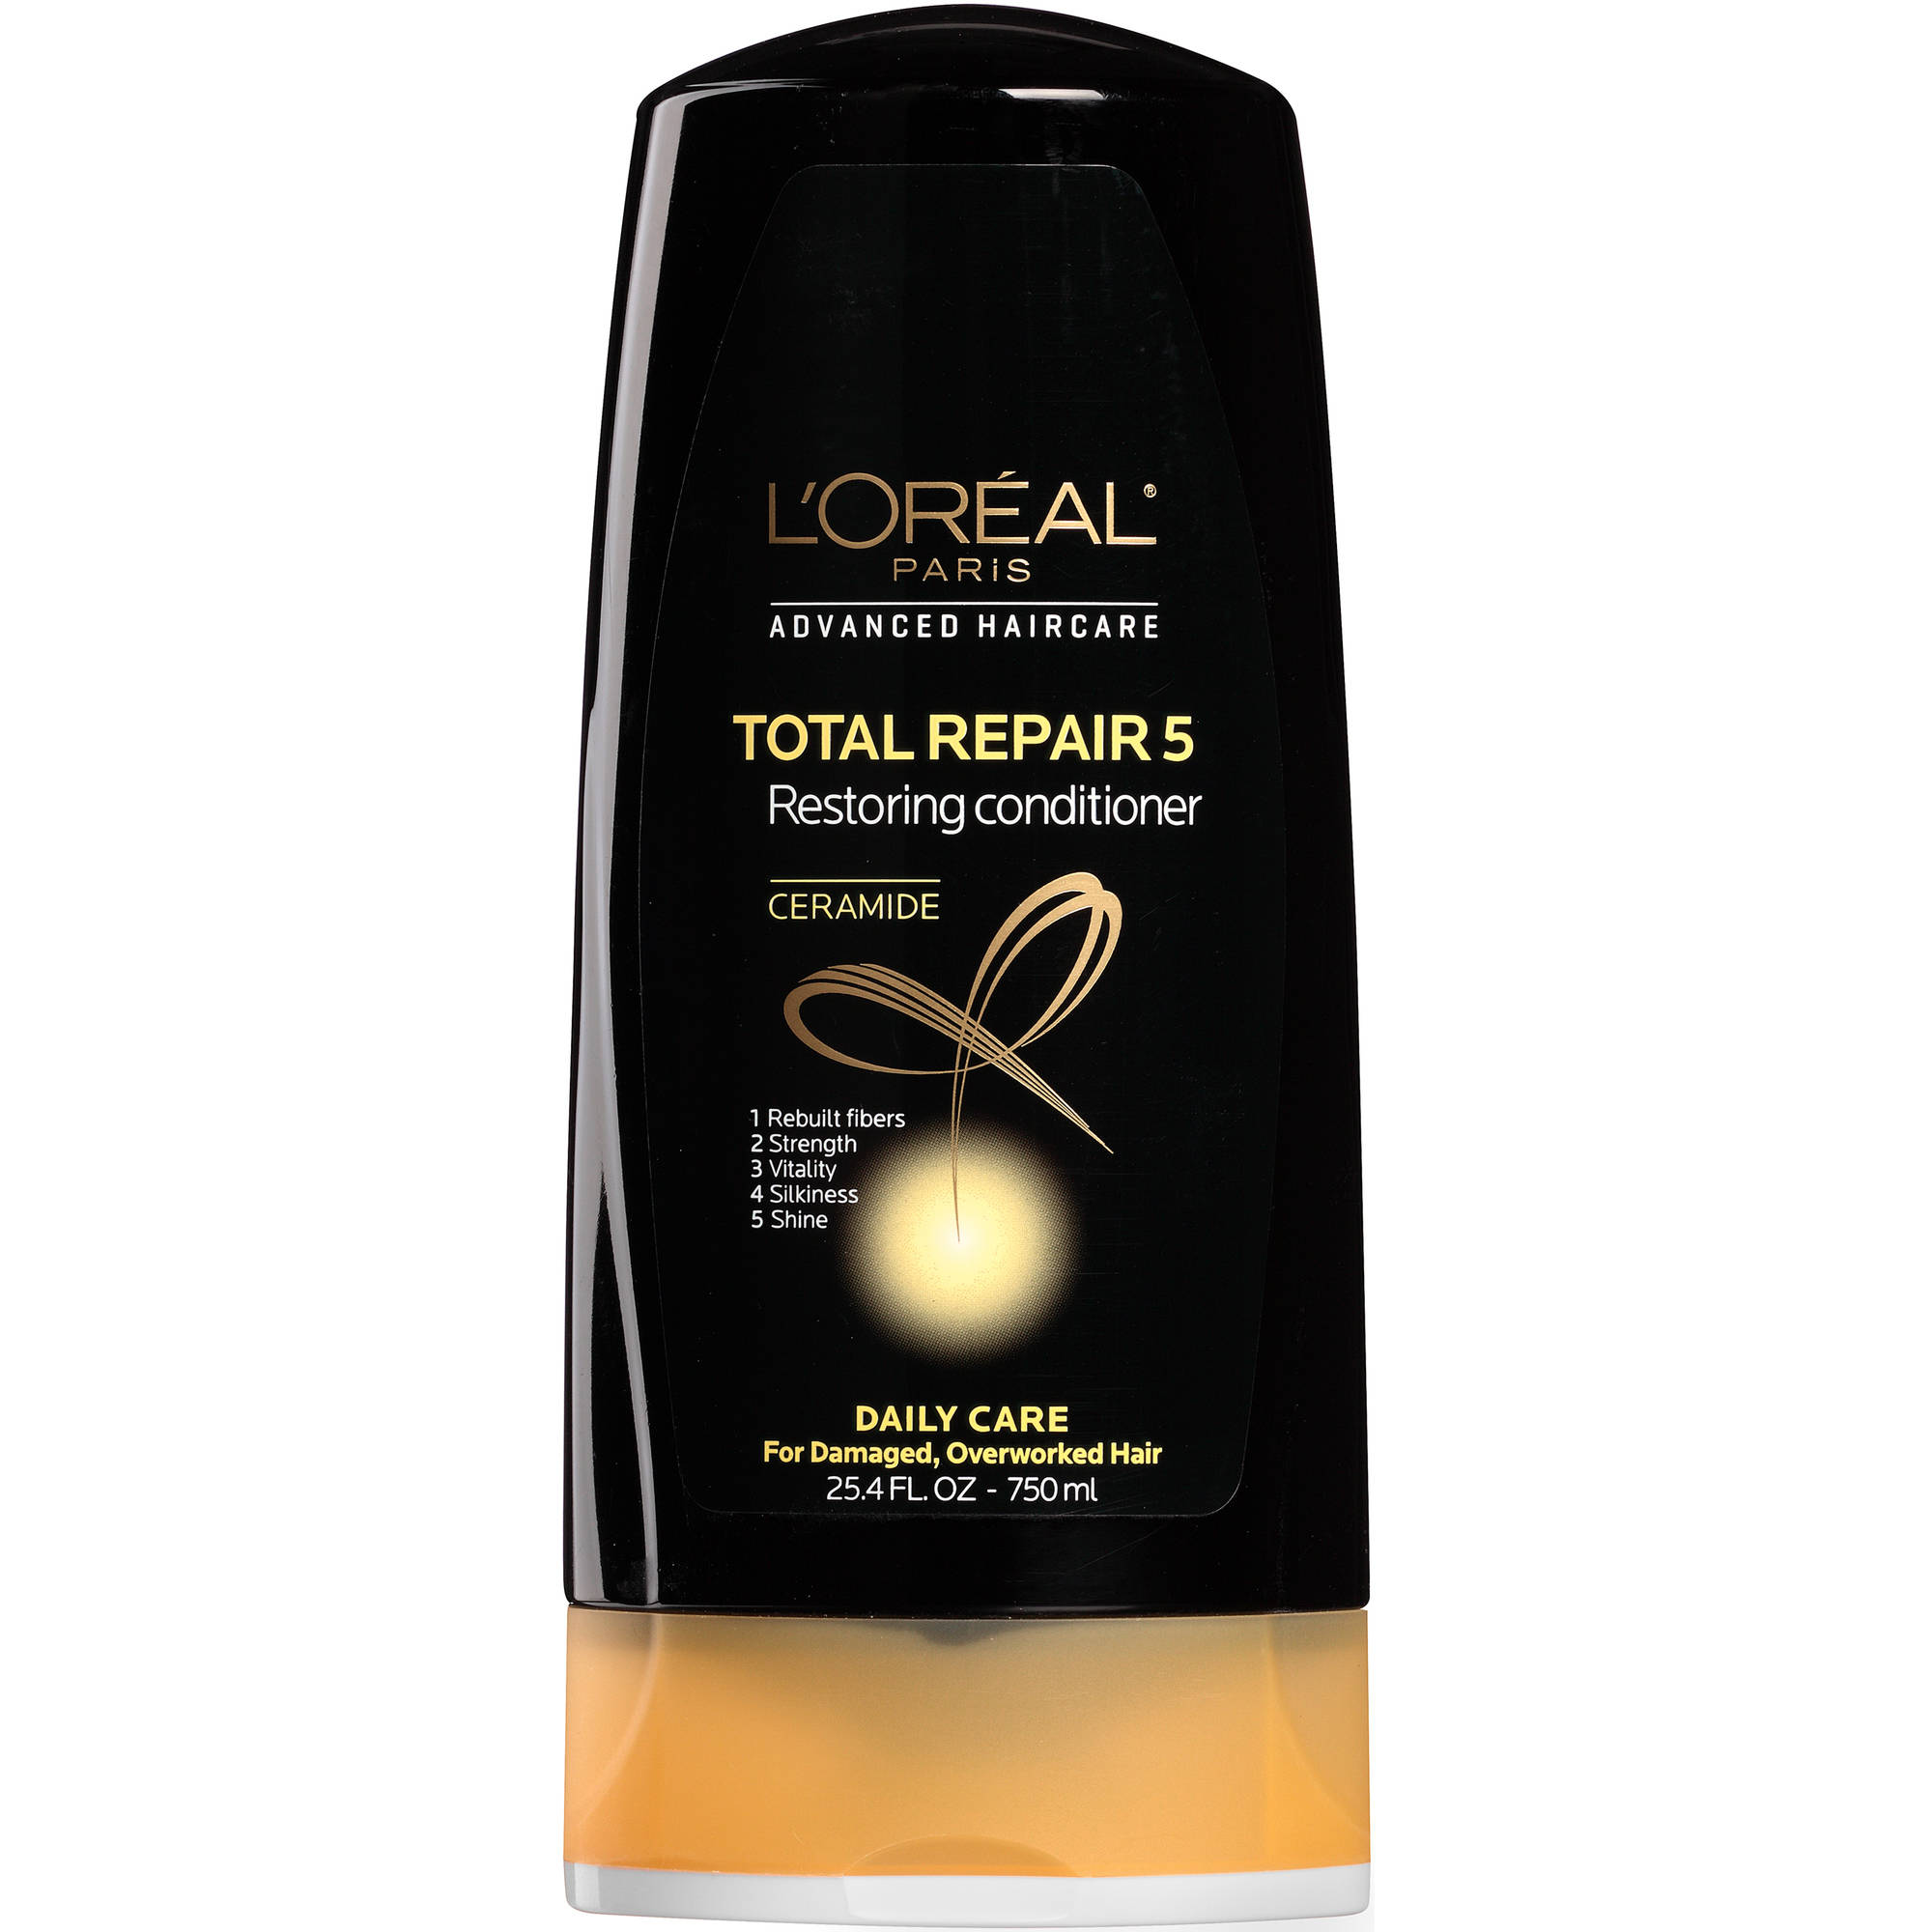 L'Oreal Paris Hair Expert Total Repair 5 Restoring Conditioner 25.4 FL OZ